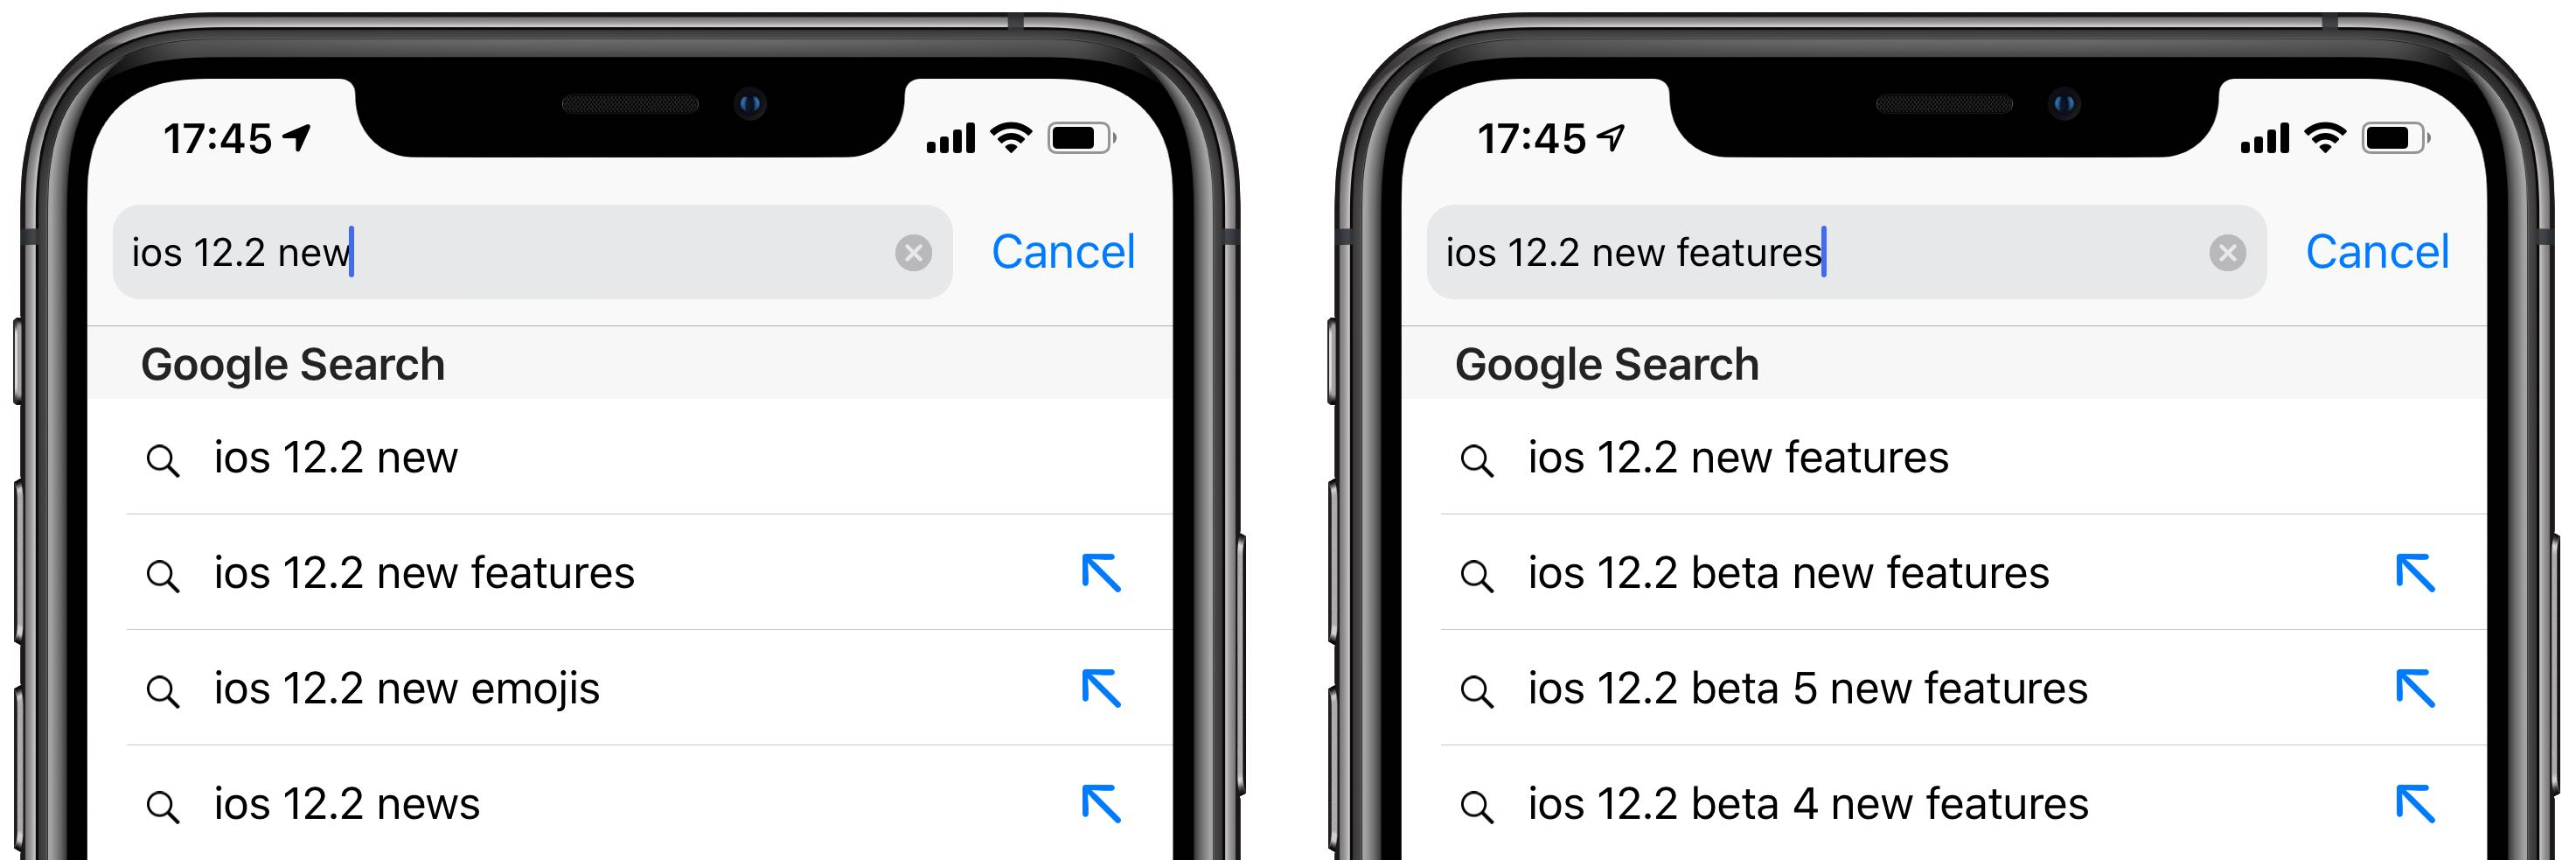 Safari on iOS 12 2 has a new feature for getting to targeted search